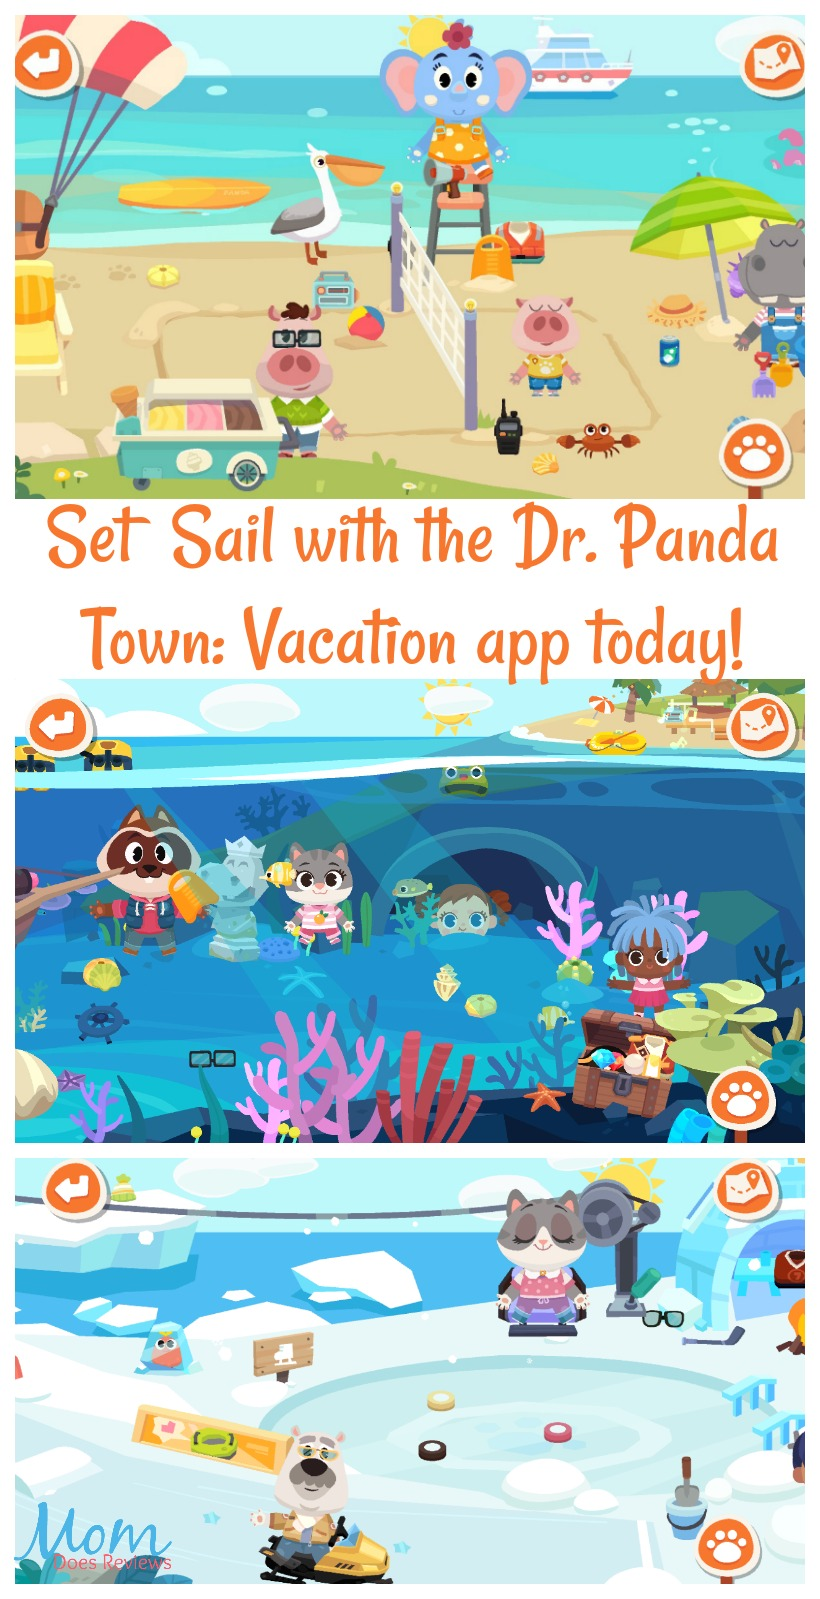 Dr. Panda Town: Vacation app